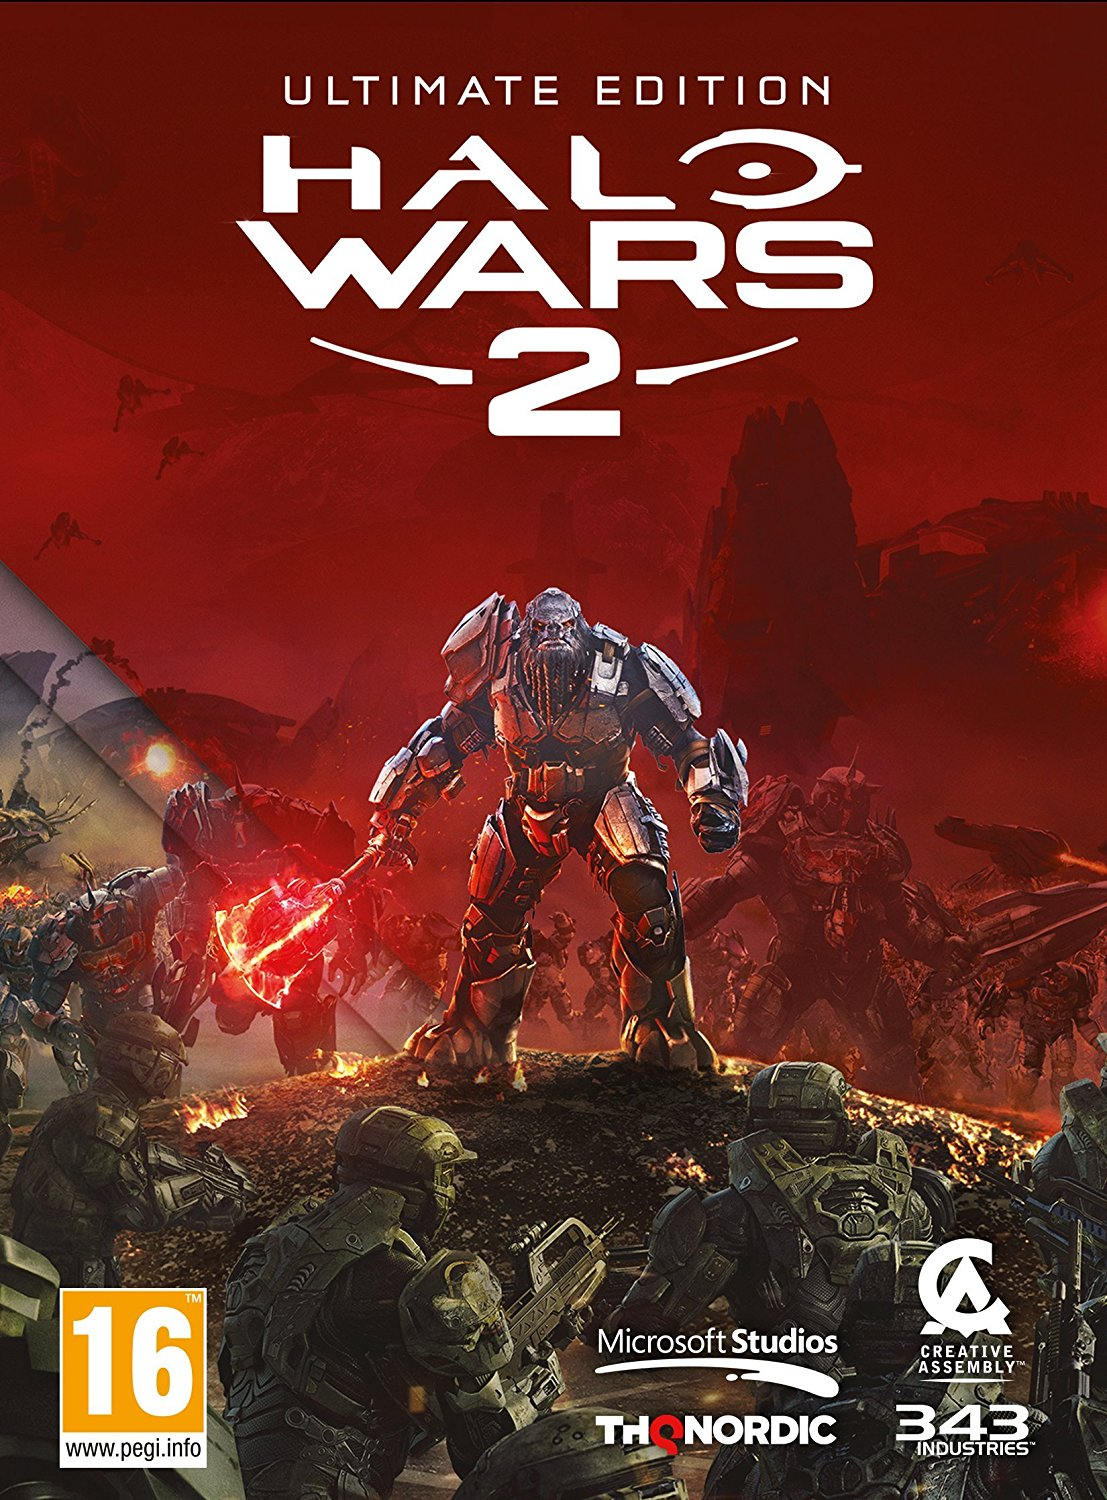 android halo download wars